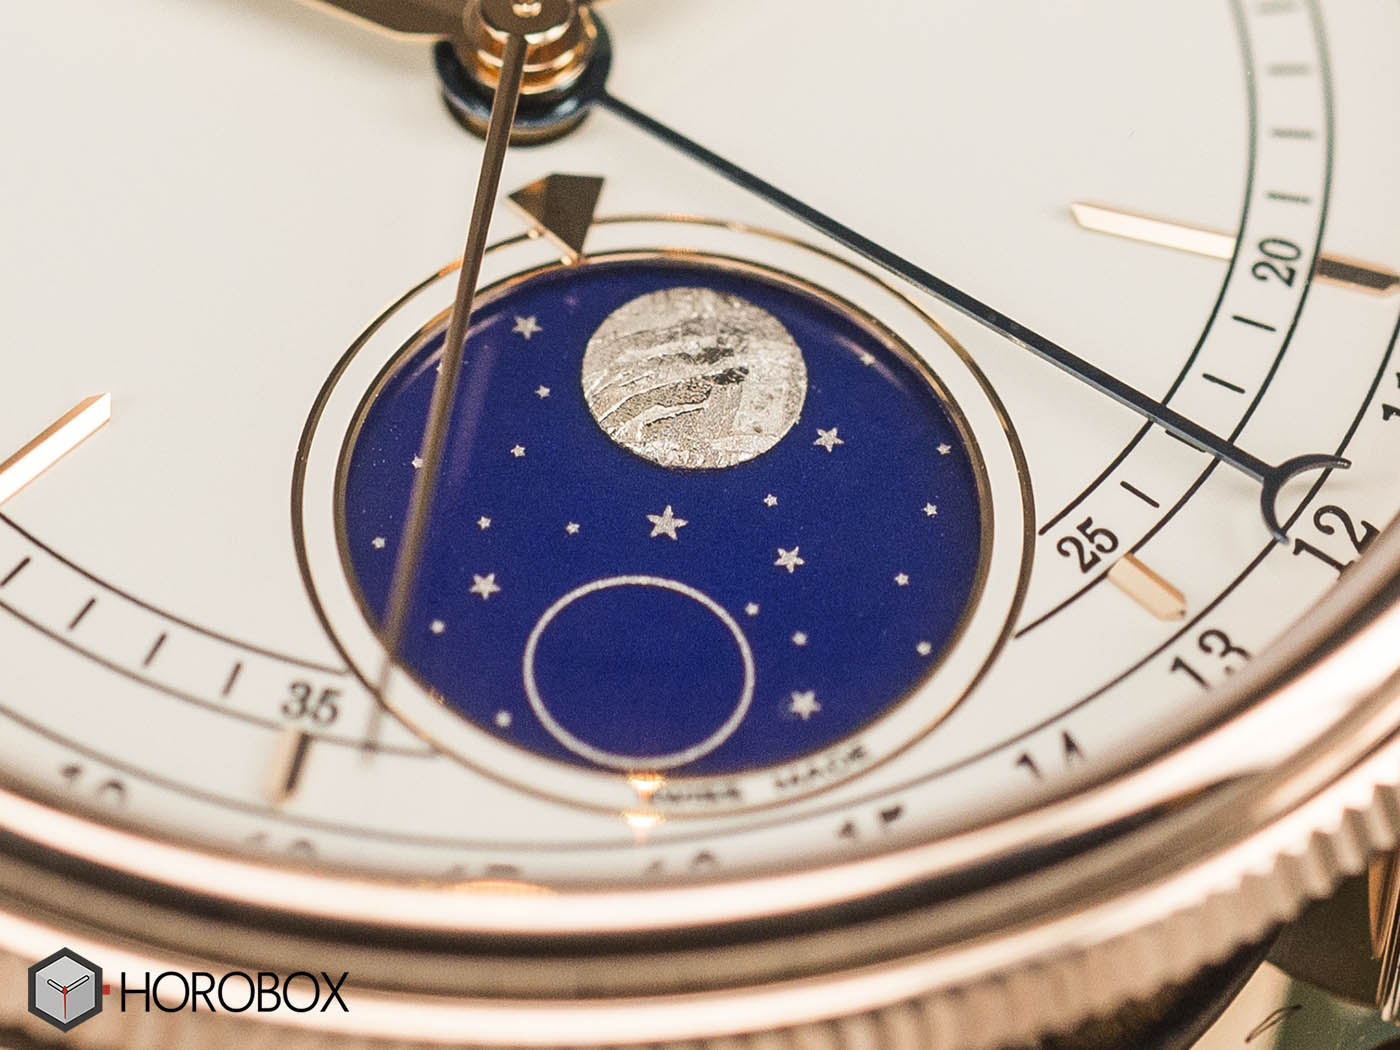 rolex-cellini-moonphase-ref-50535-7.jpg